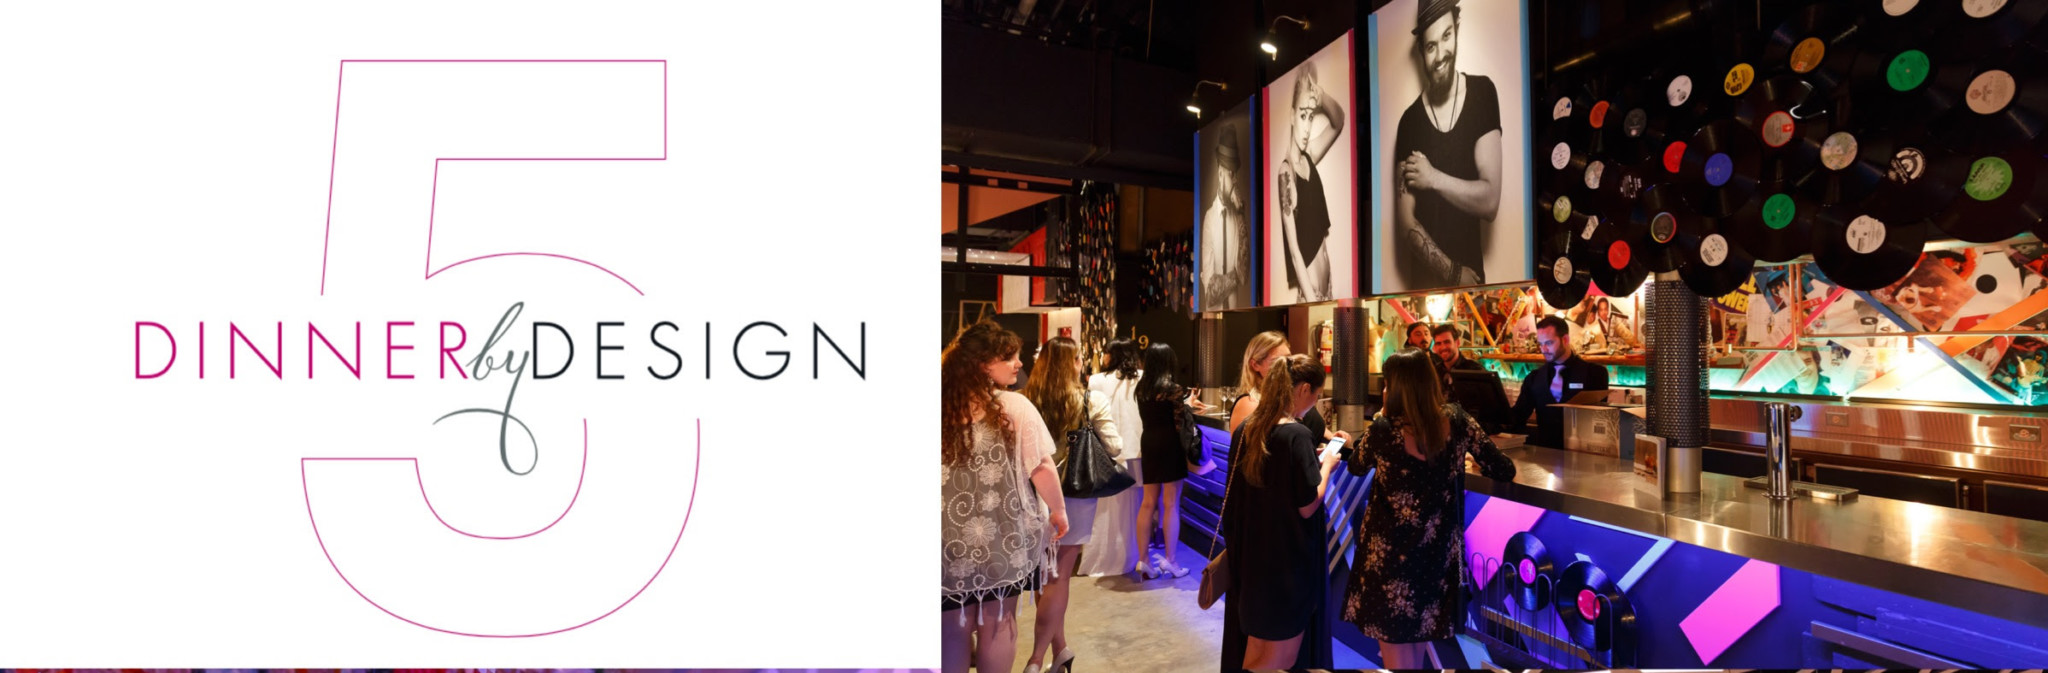 High-Concept Design Meets Haute Cuisine at Fifth Annual Dinner by Design